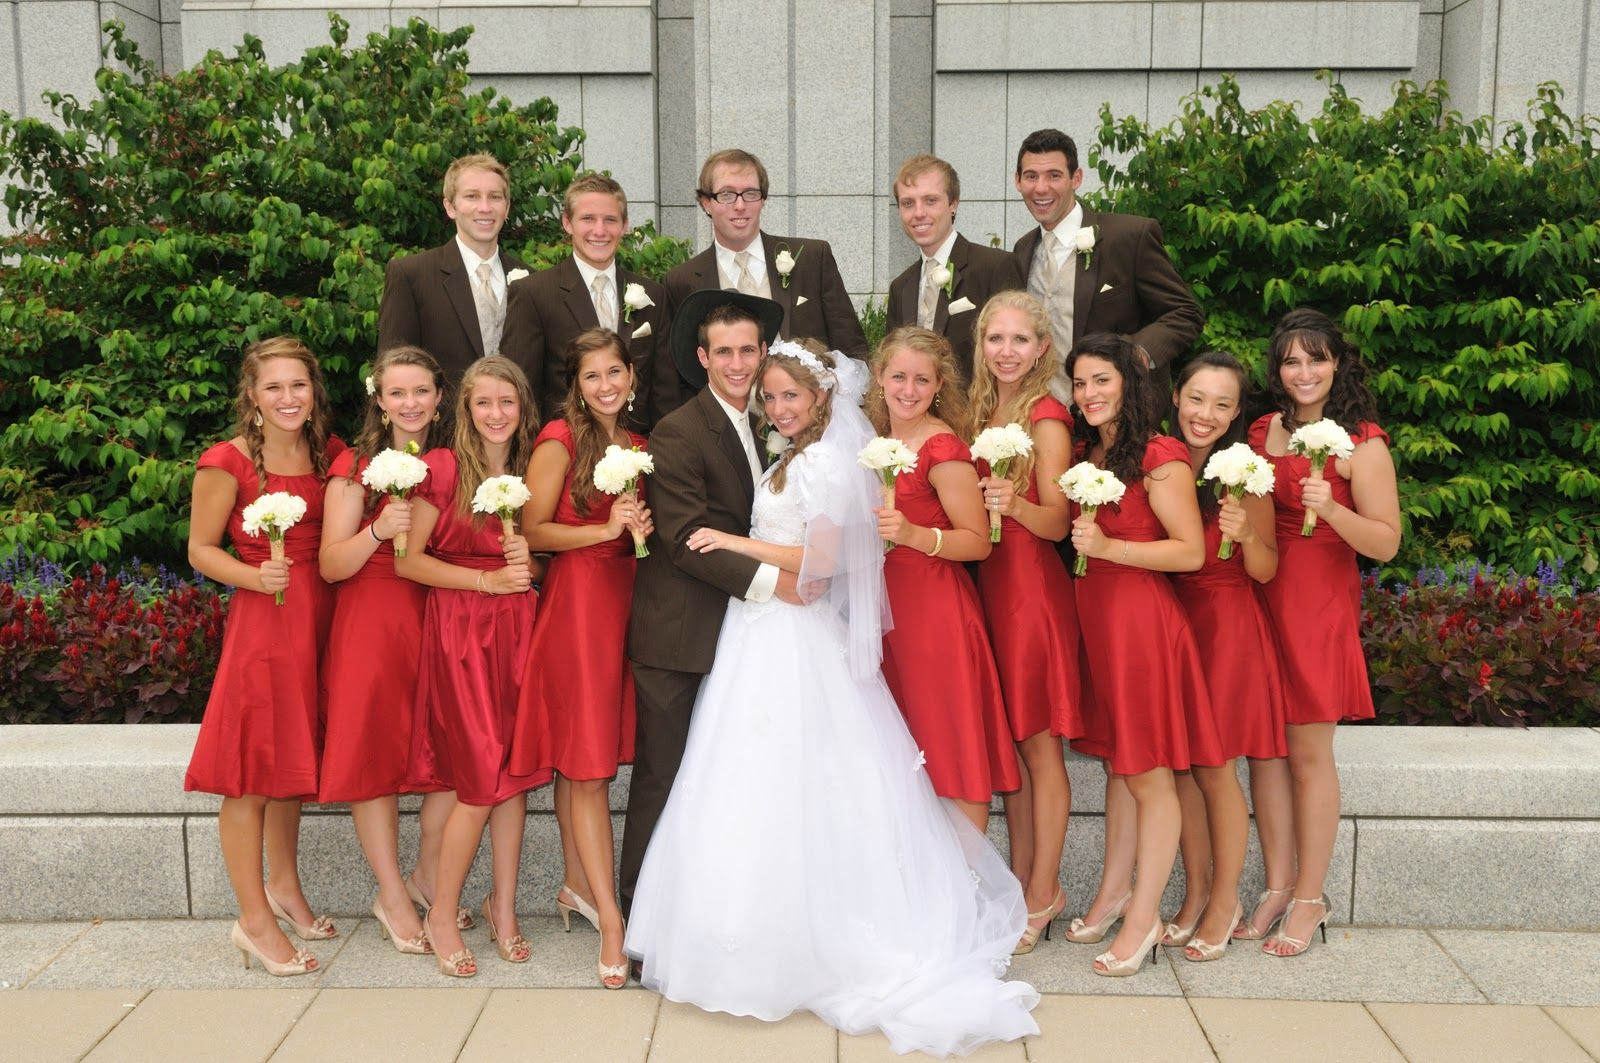 Gold cream and red wedding google search buhle elegant gold bella wednesday wedding details the wedding party red dress gold shoes white flowers ombrellifo Gallery